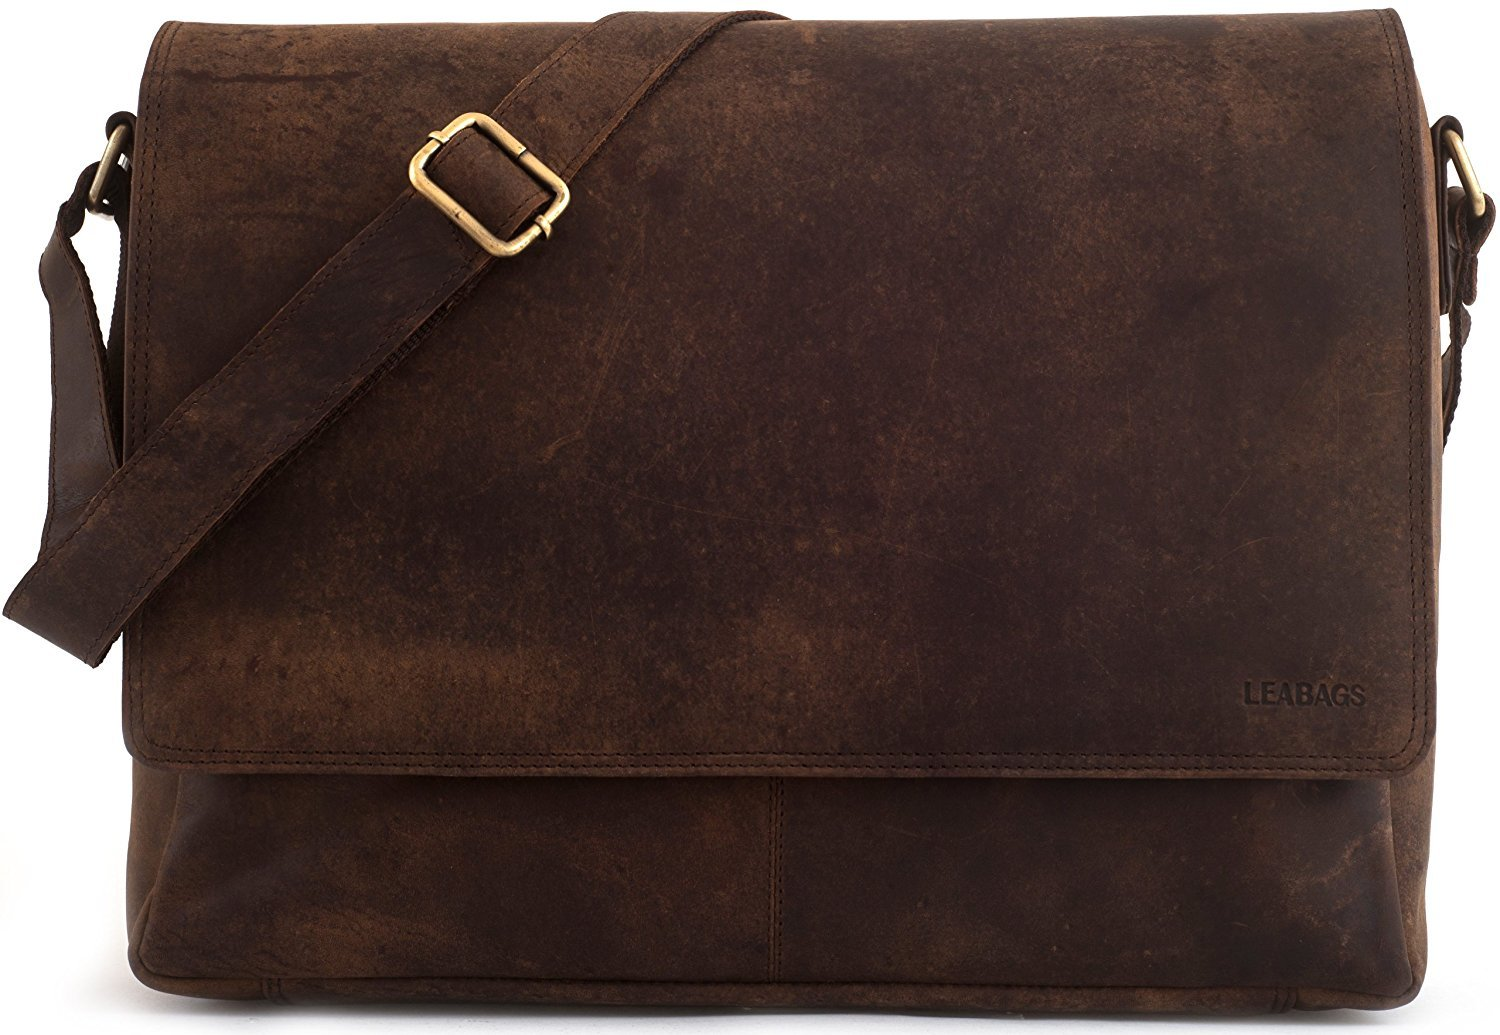 LEABAGS Oxford genuine buffalo leather messenger bag in vintage style - Muskat